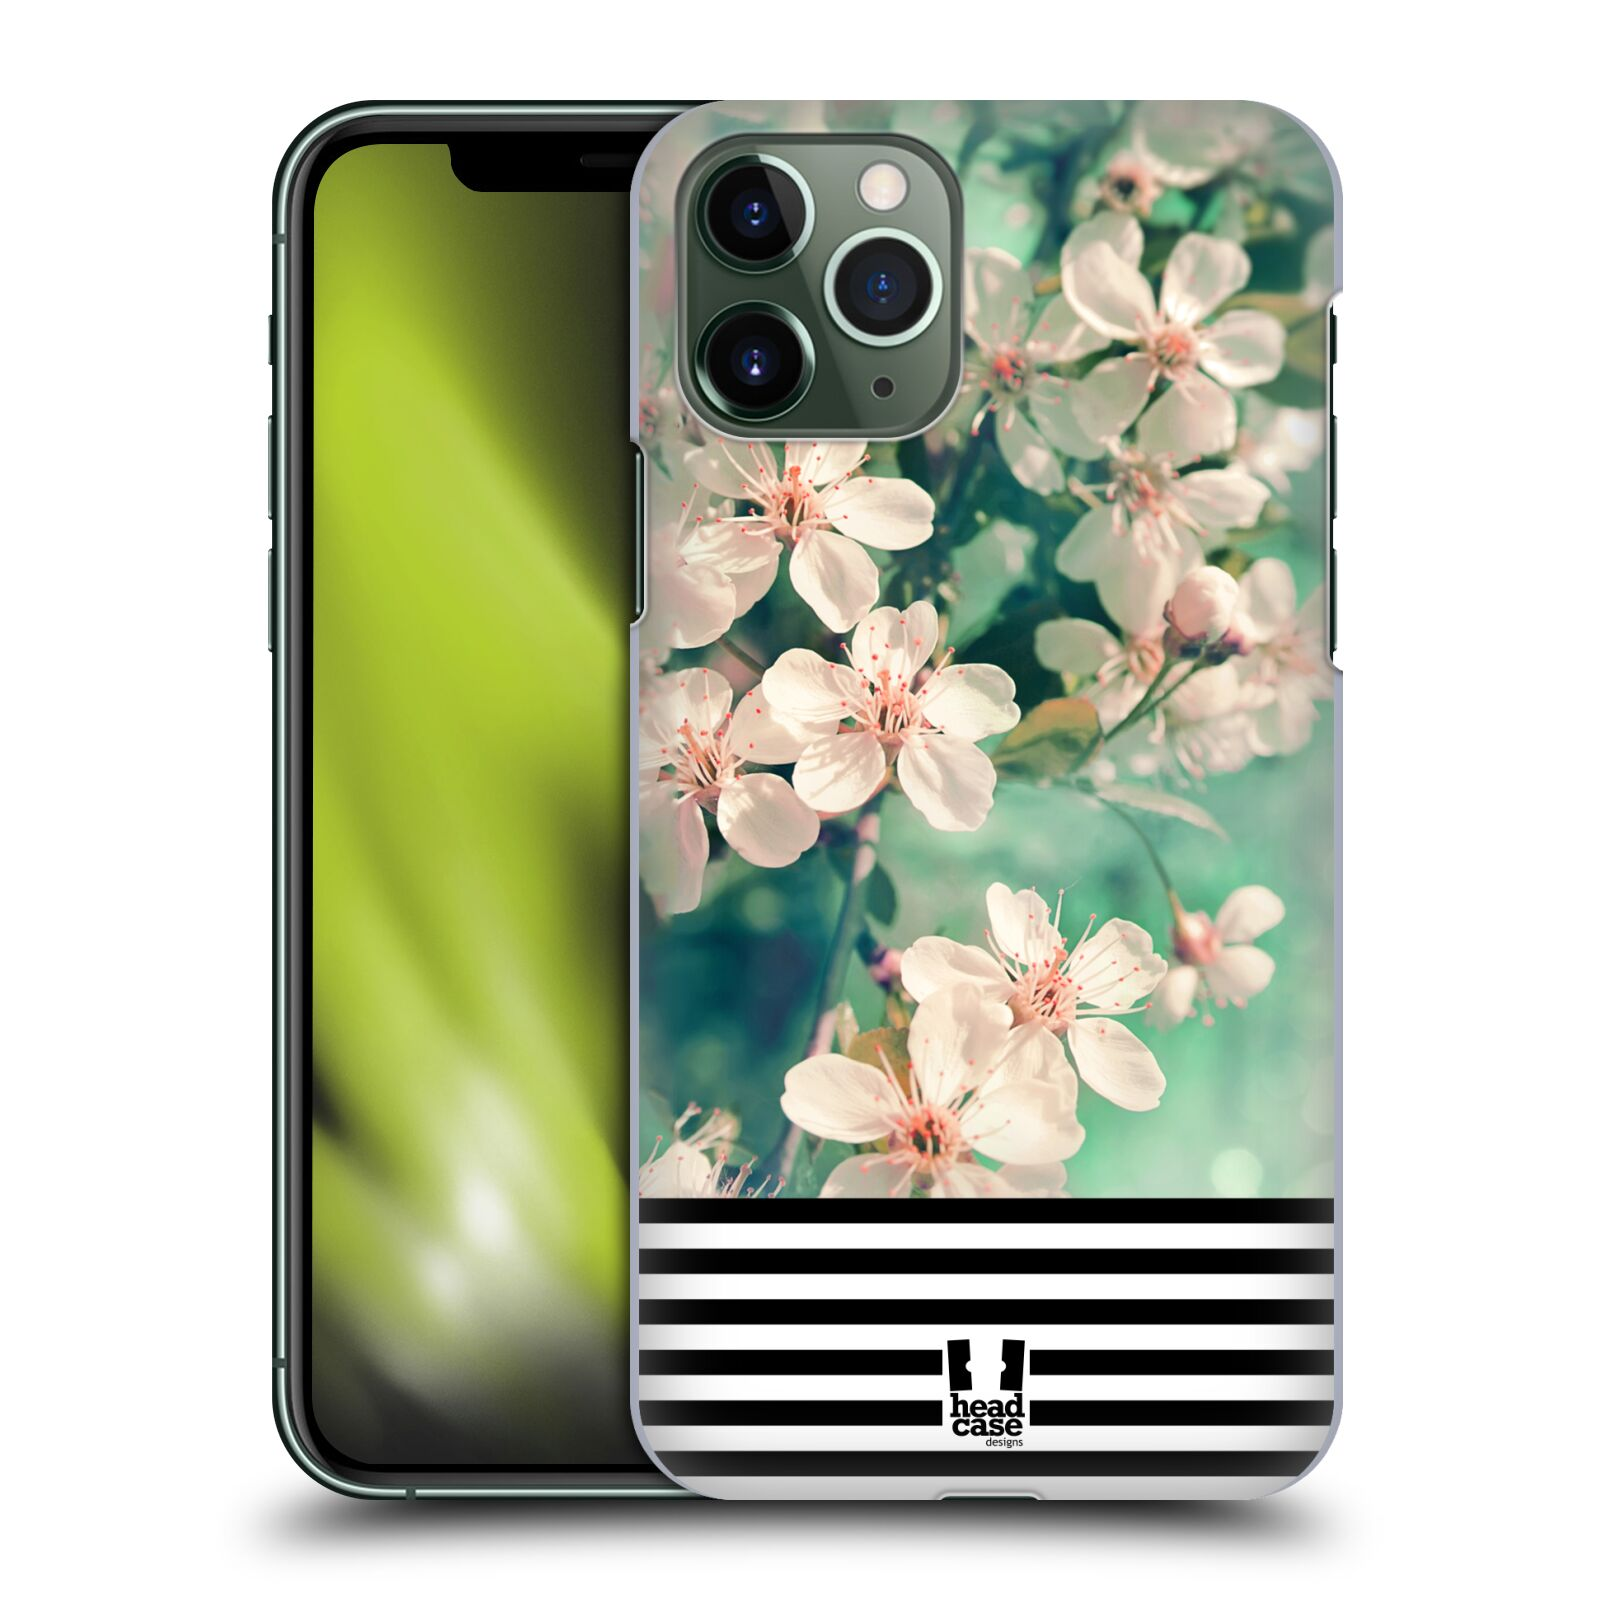 lagerfeld obaly iphone xs max | Plastové pouzdro na mobil Apple iPhone 11 Pro - Head Case - MIX FLORAL STRIPES